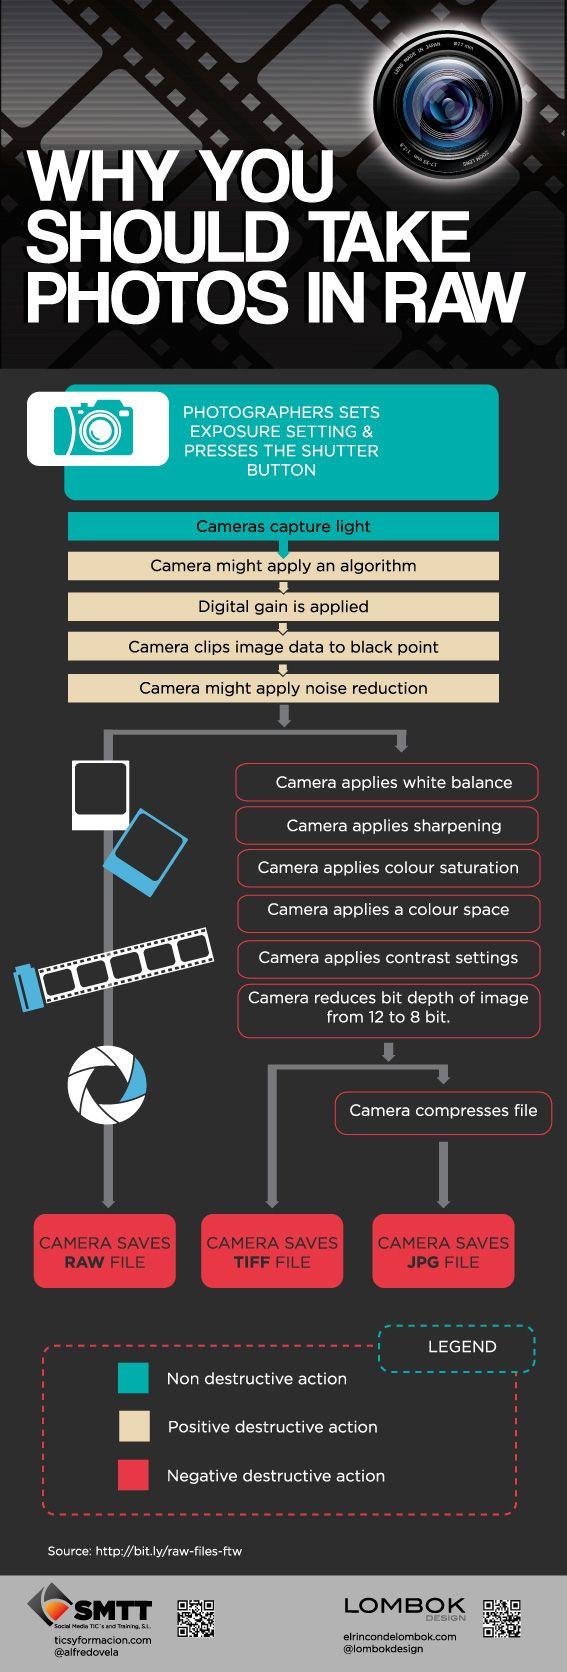 Why you should take photos in RAW.